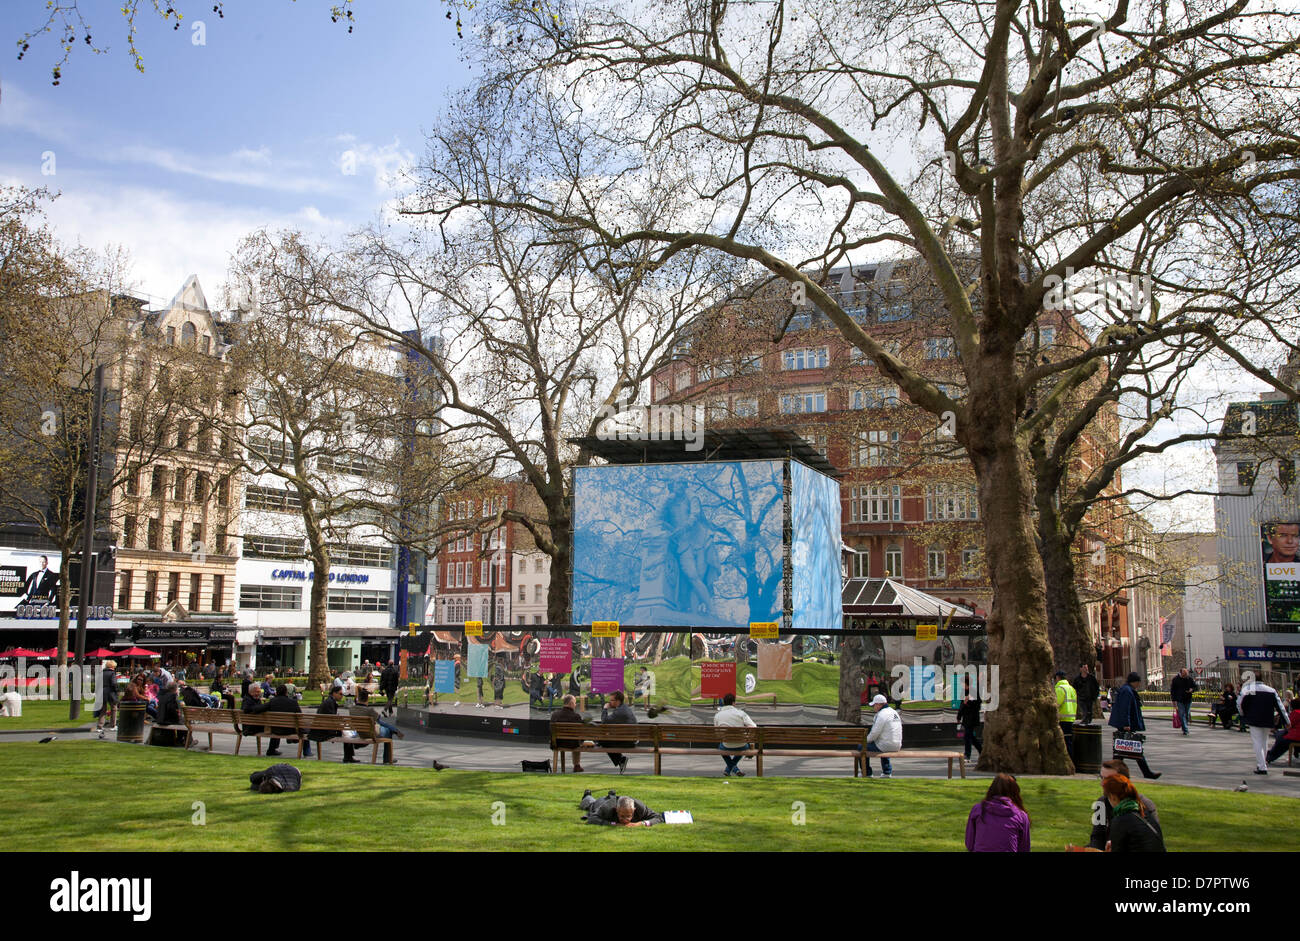 View of Leicester Square, West End, London, England, United Kingdom - Stock Image